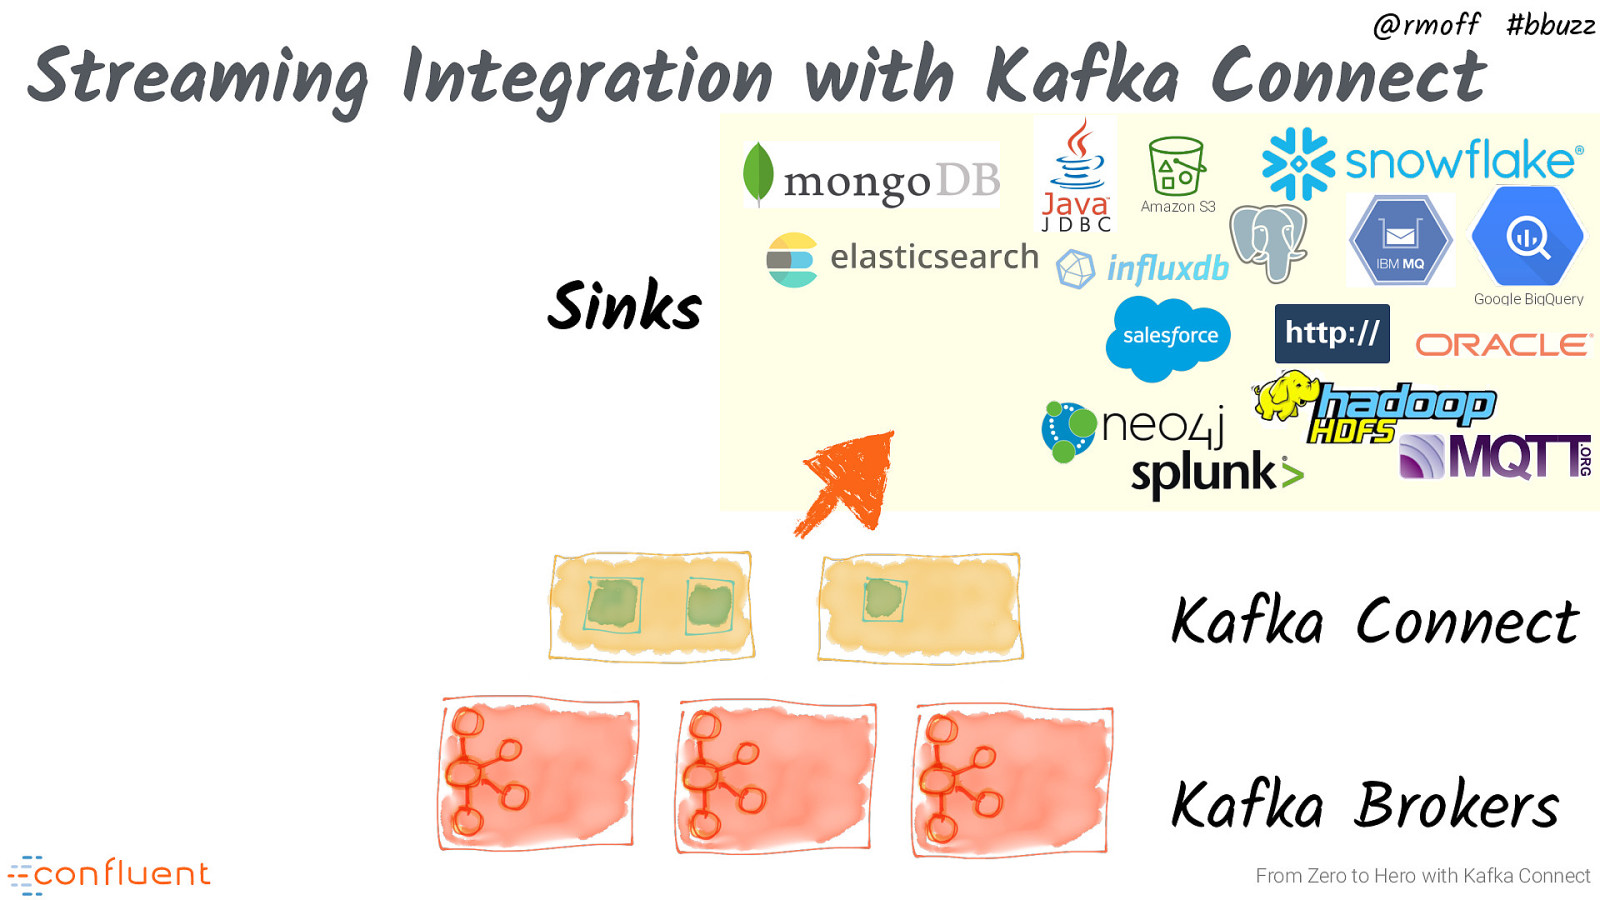 From Zero to Hero with Kafka Connect